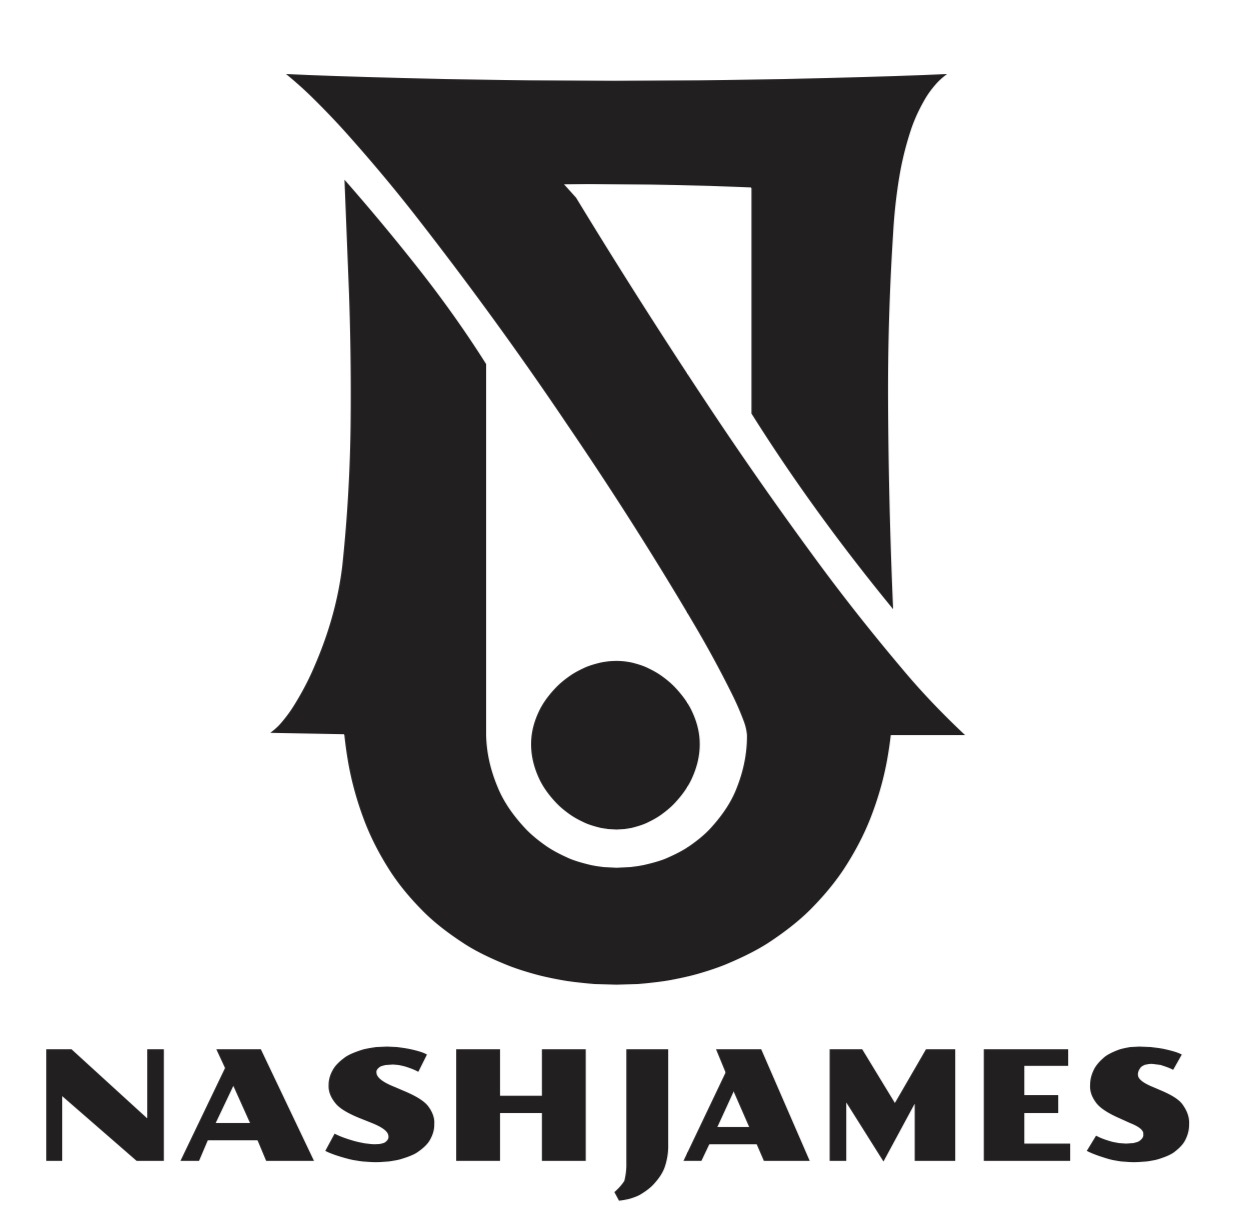 Nash James Enterprises LLC